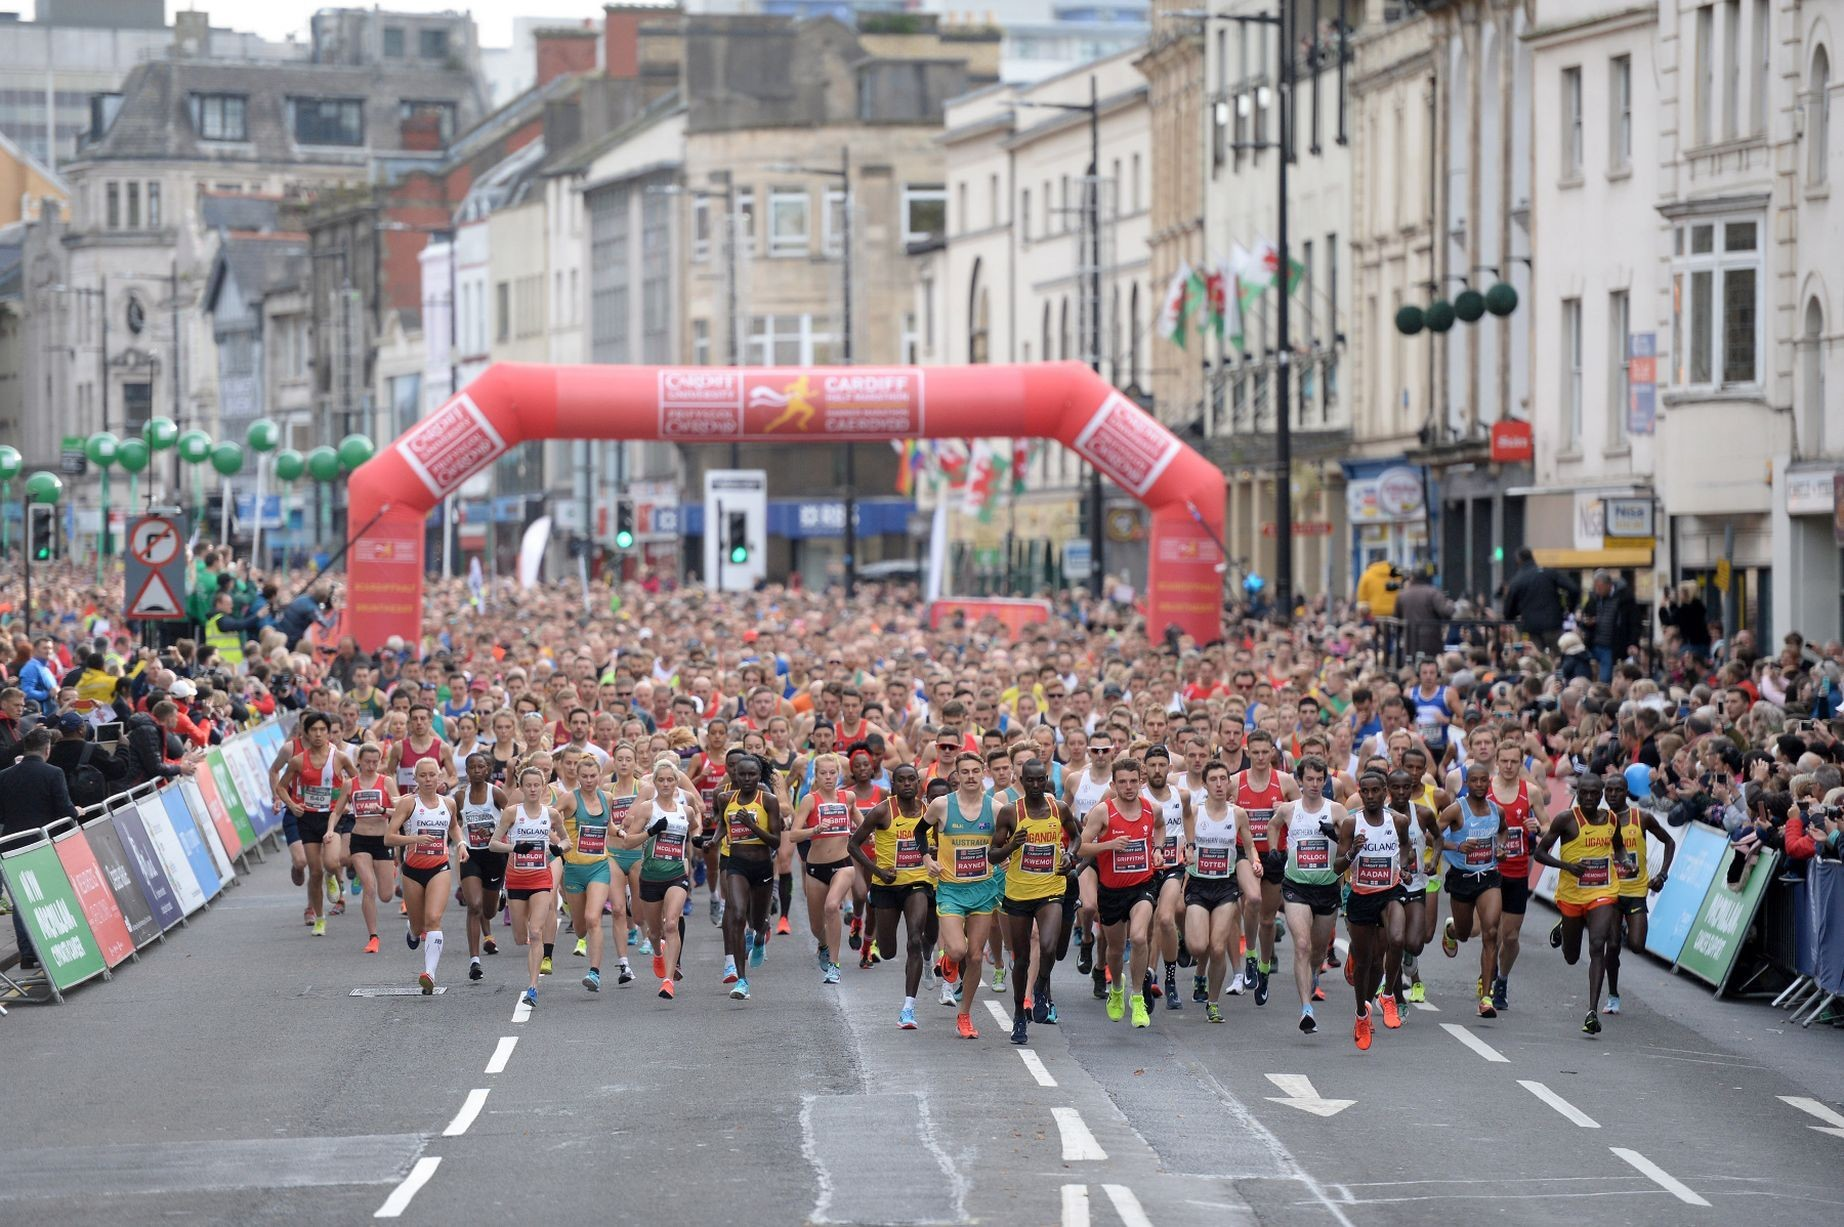 2020 Cardiff Half Marathon postponed again, until October 2021 due to coronavirus pandemic